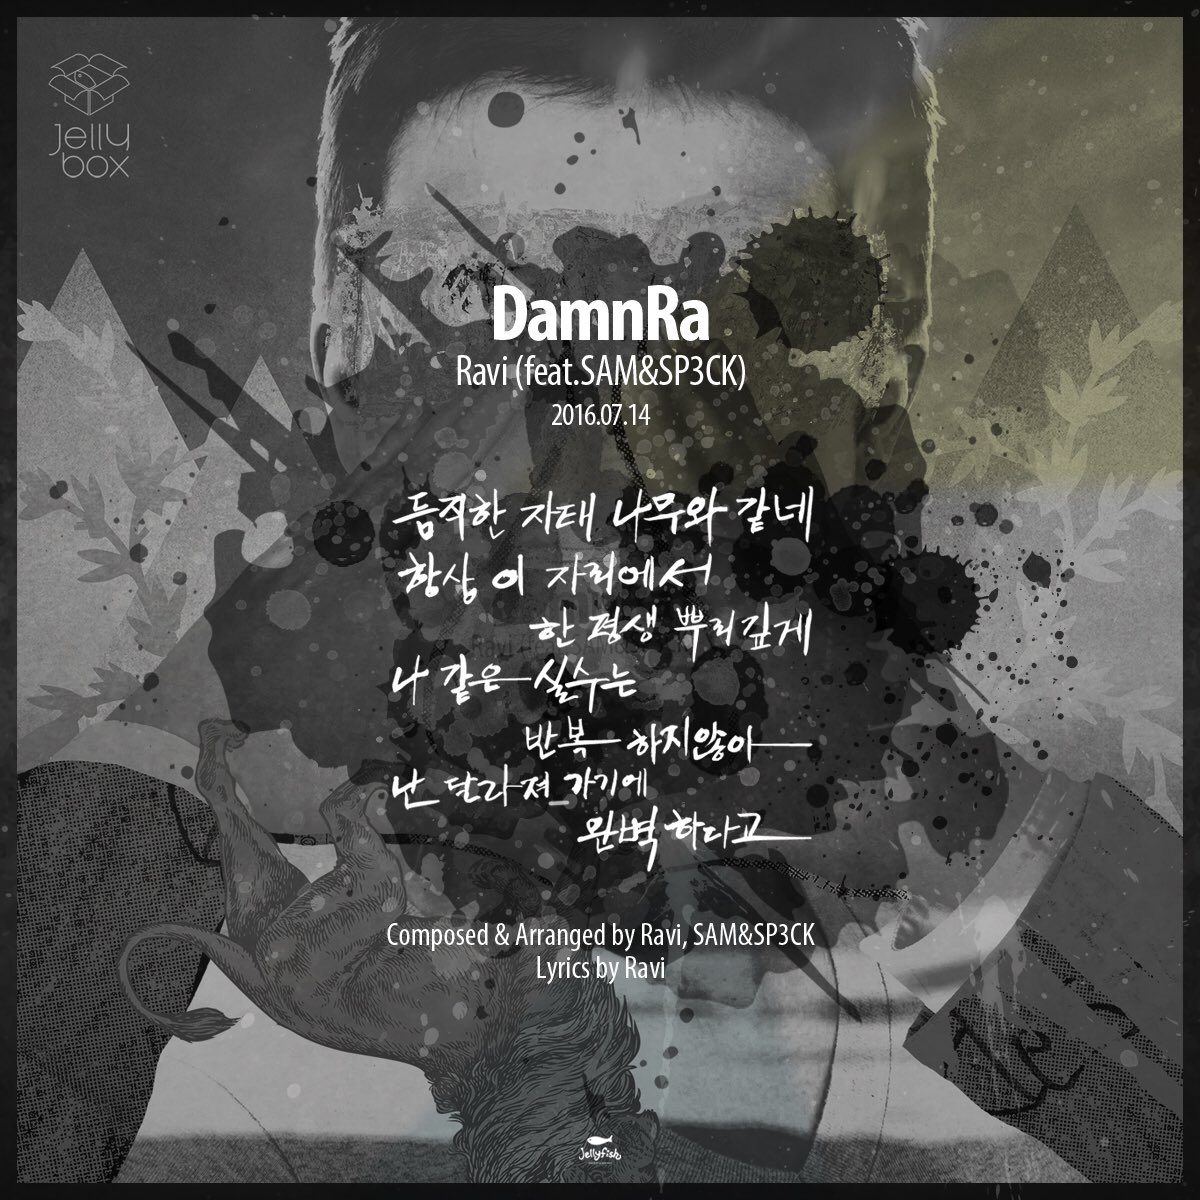 Ravi DamnRa lyrics